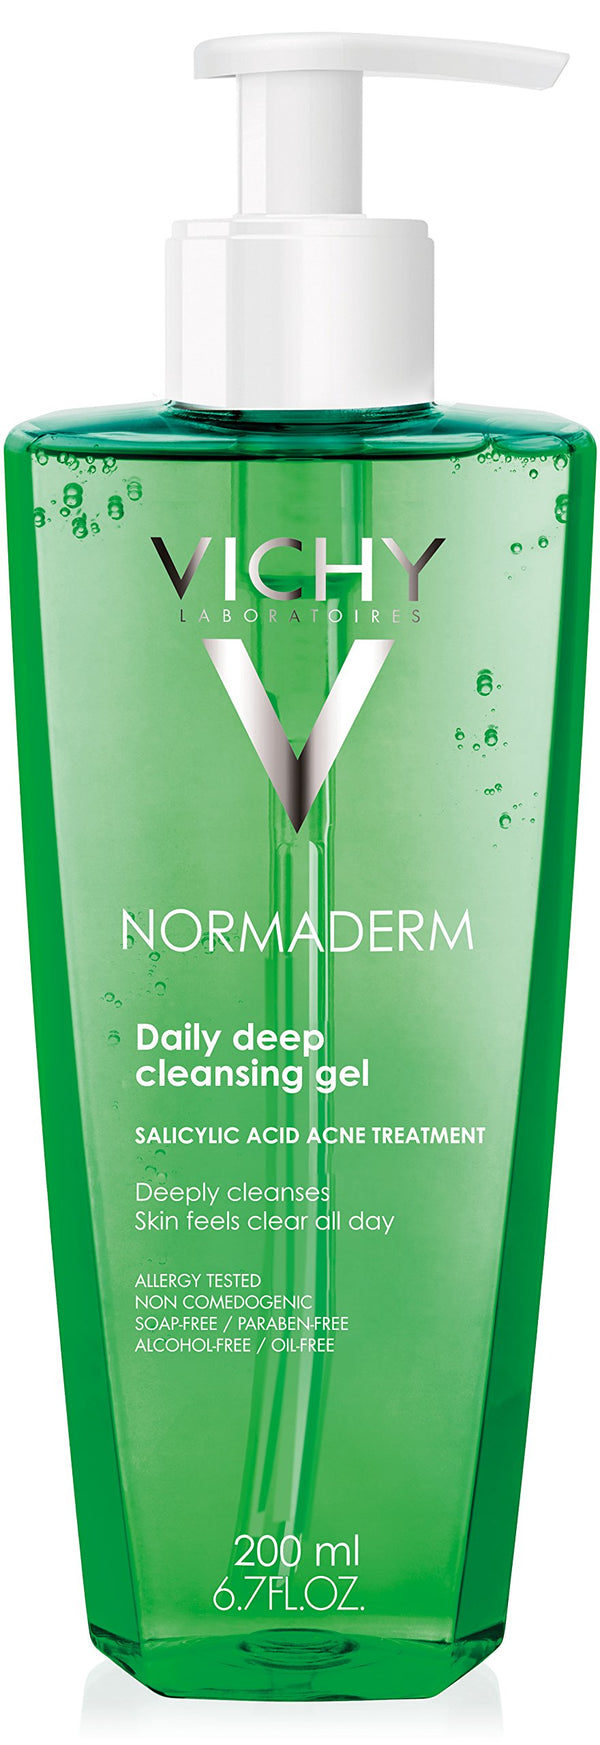 Vichy Normaderm Deep Cleansing Gel, Acne Face Wash with Salicylic Acid (6.2x4.4x18.4cm)